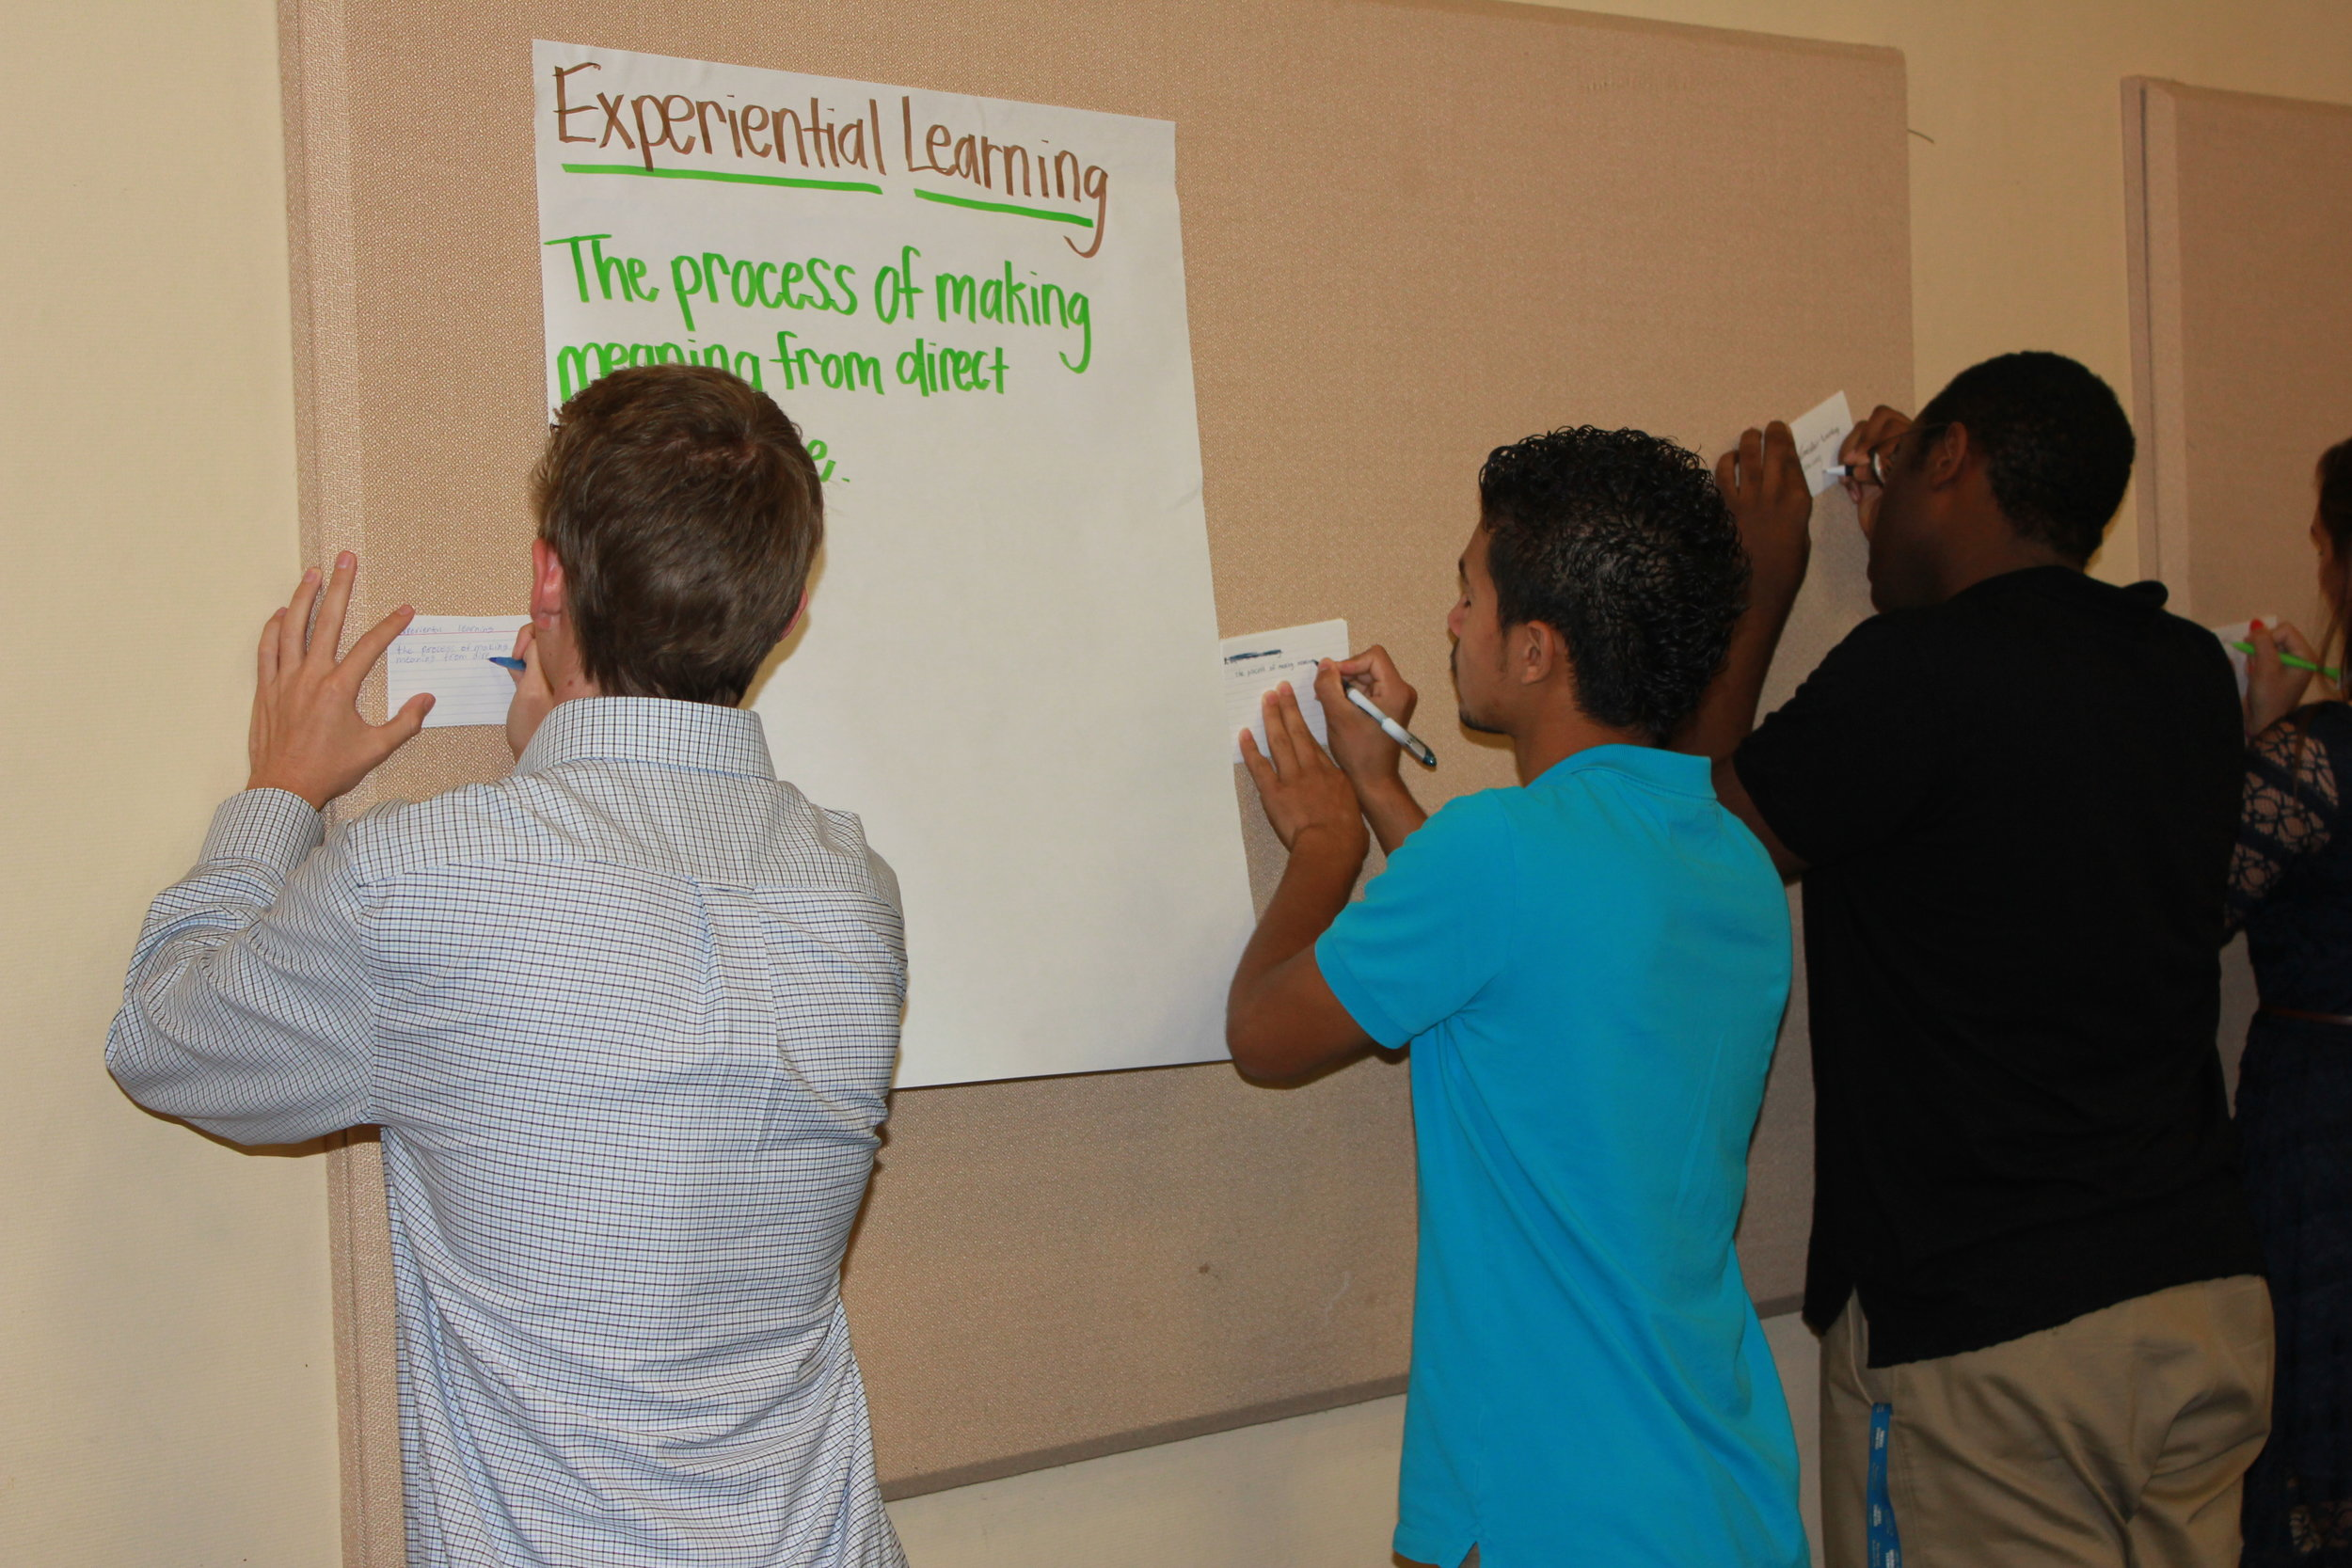 Students learned a variety of leadership skills that will be extremely valuable during their year of service.